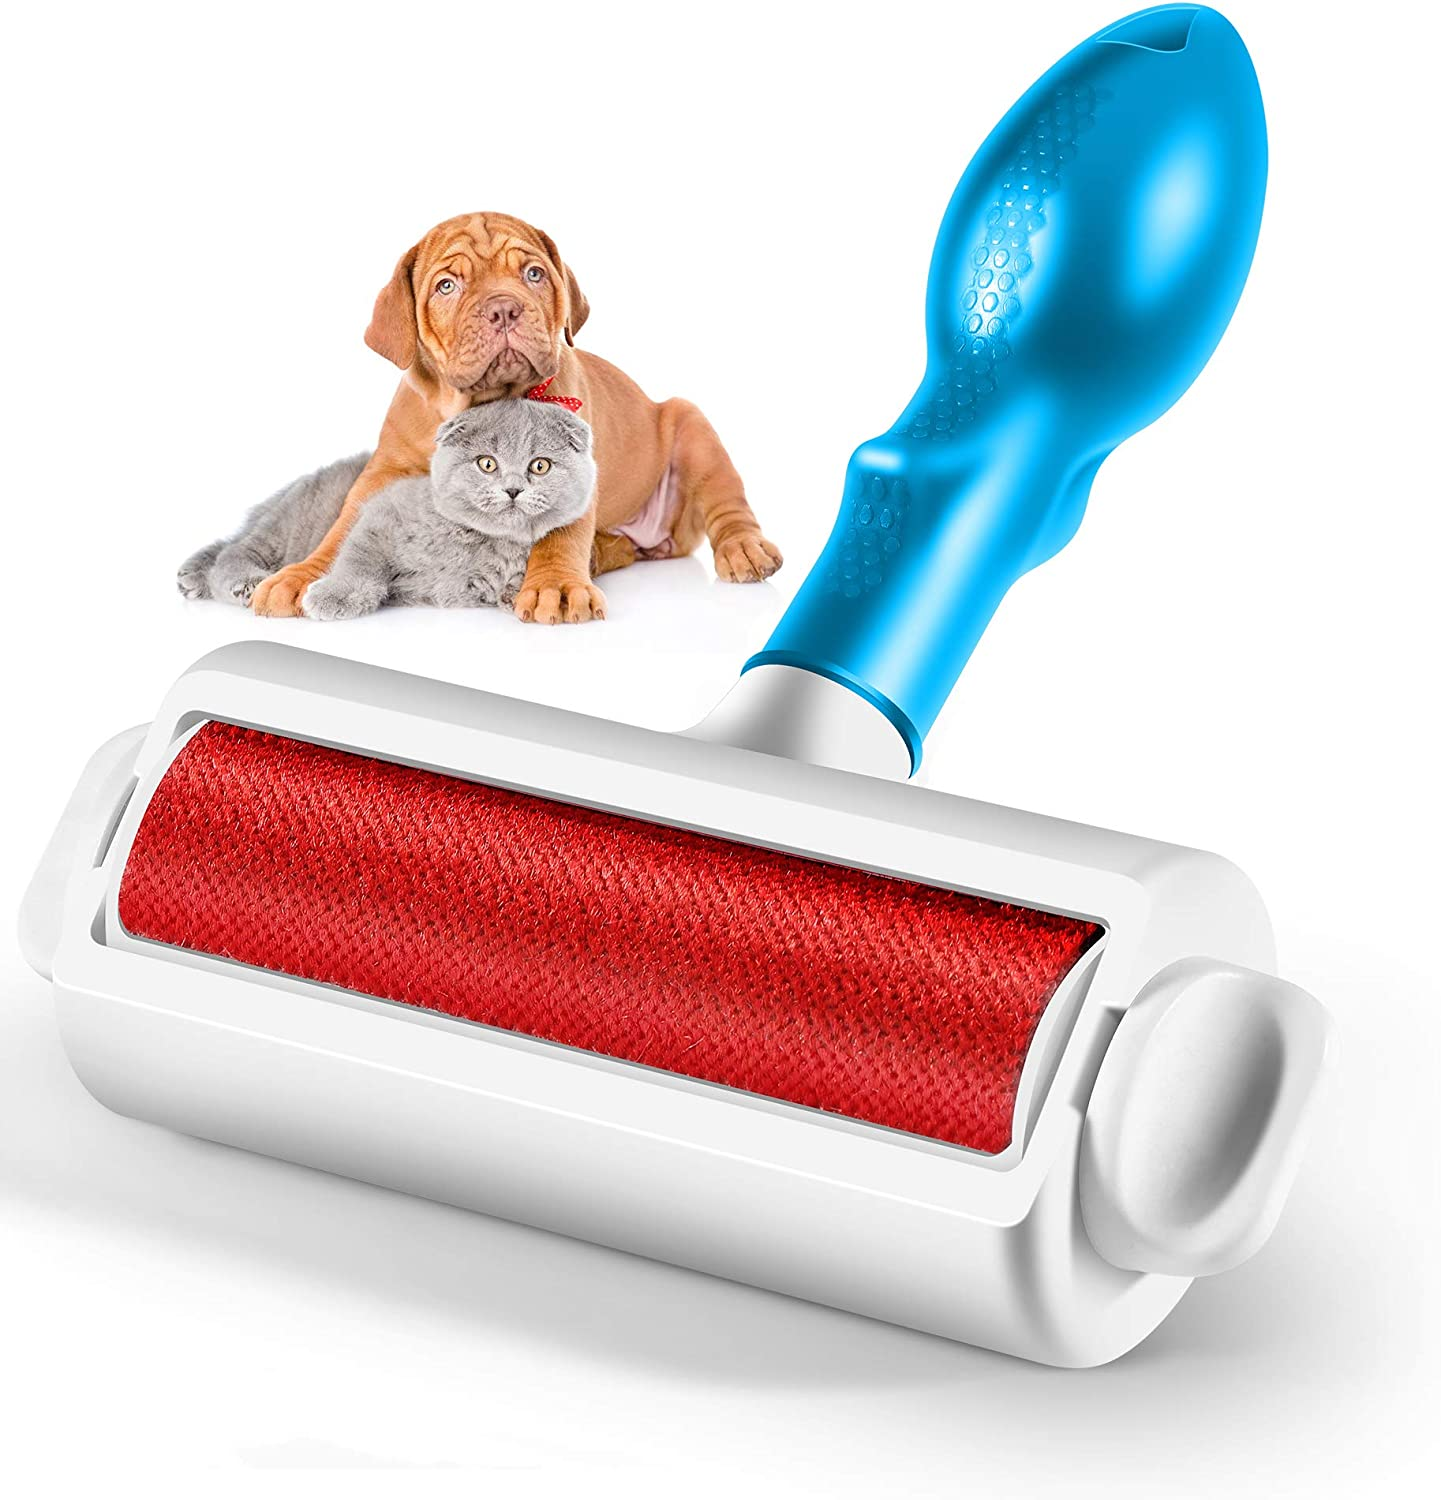 Vanzon Pet Hair Remover - Dog & Cat Hair Remover with Self-Cleaning Base - Remove Dog, Cat Hair from Car, Furniture, Carpets, Bedding, Clothing and More